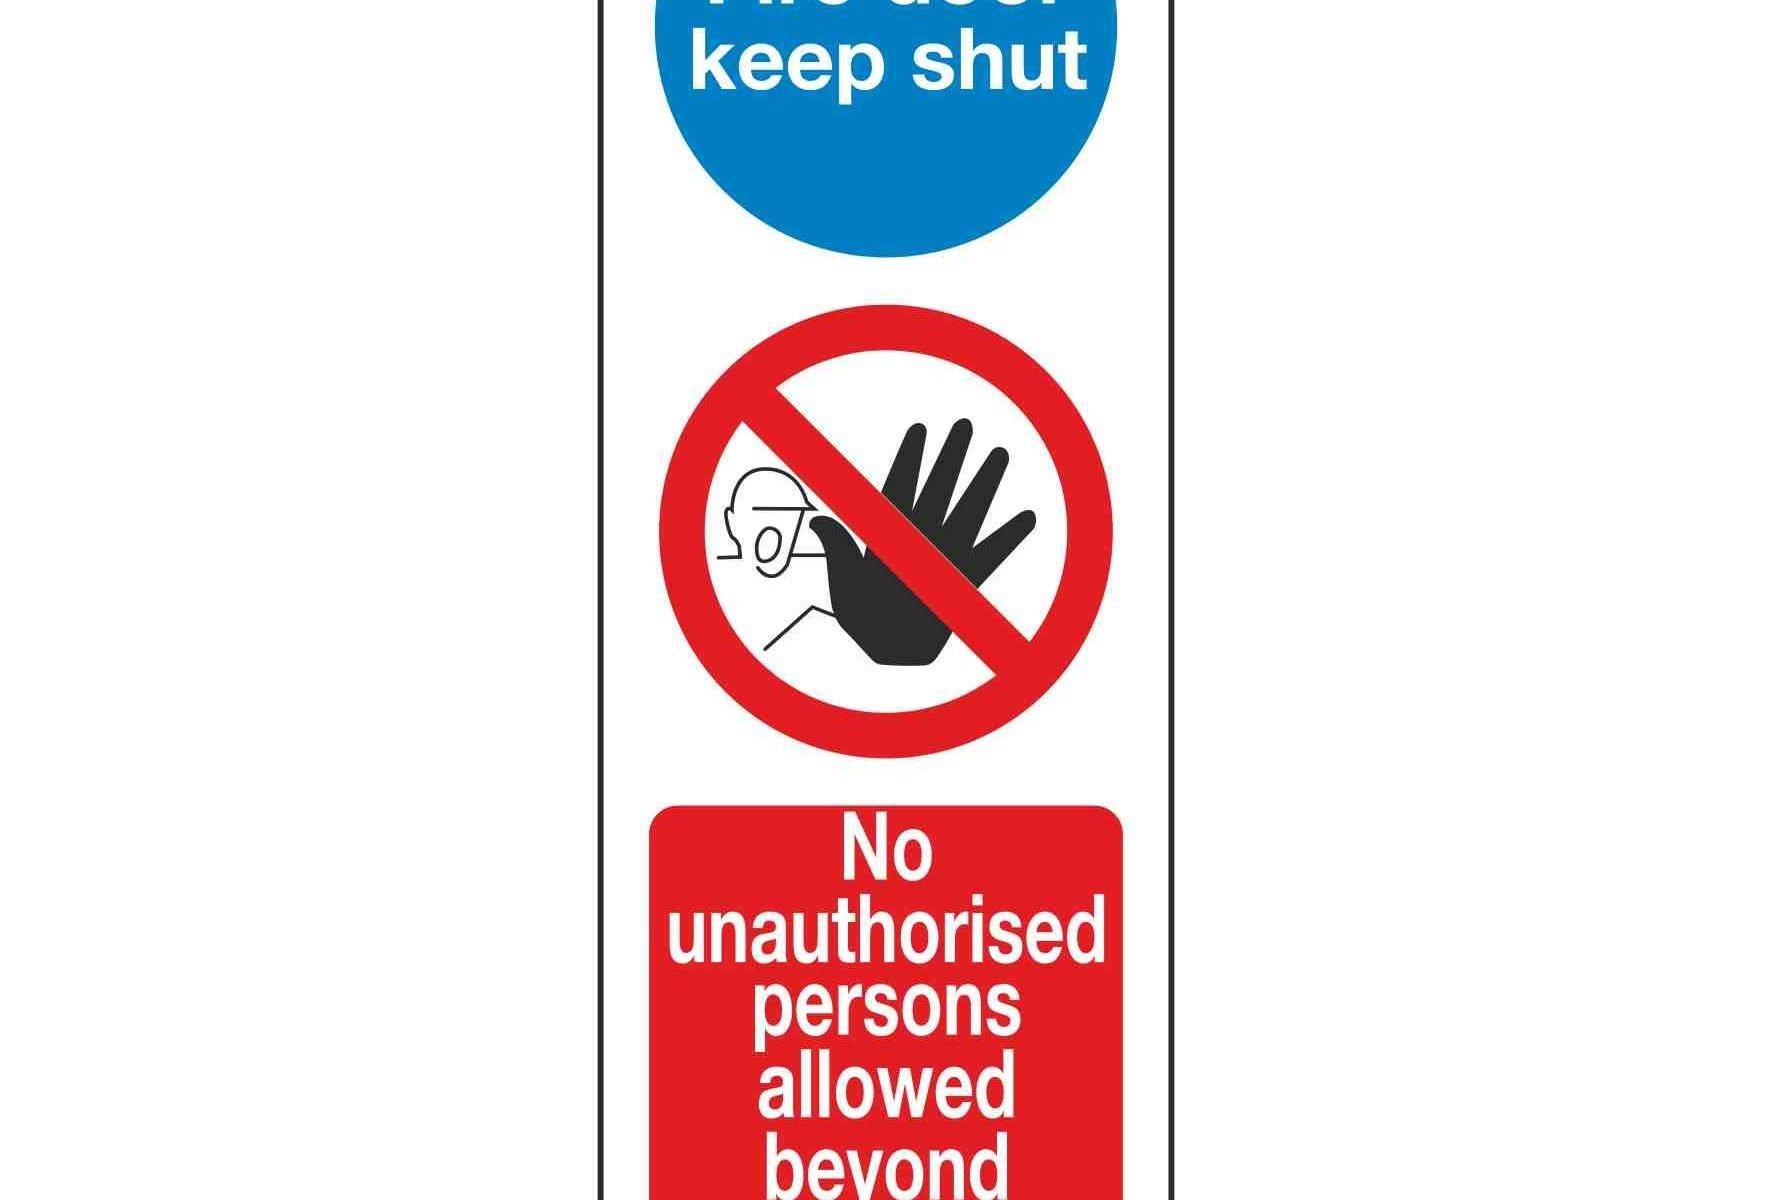 Fire door keep shut / No unauthorsied persons allowed beyond this point